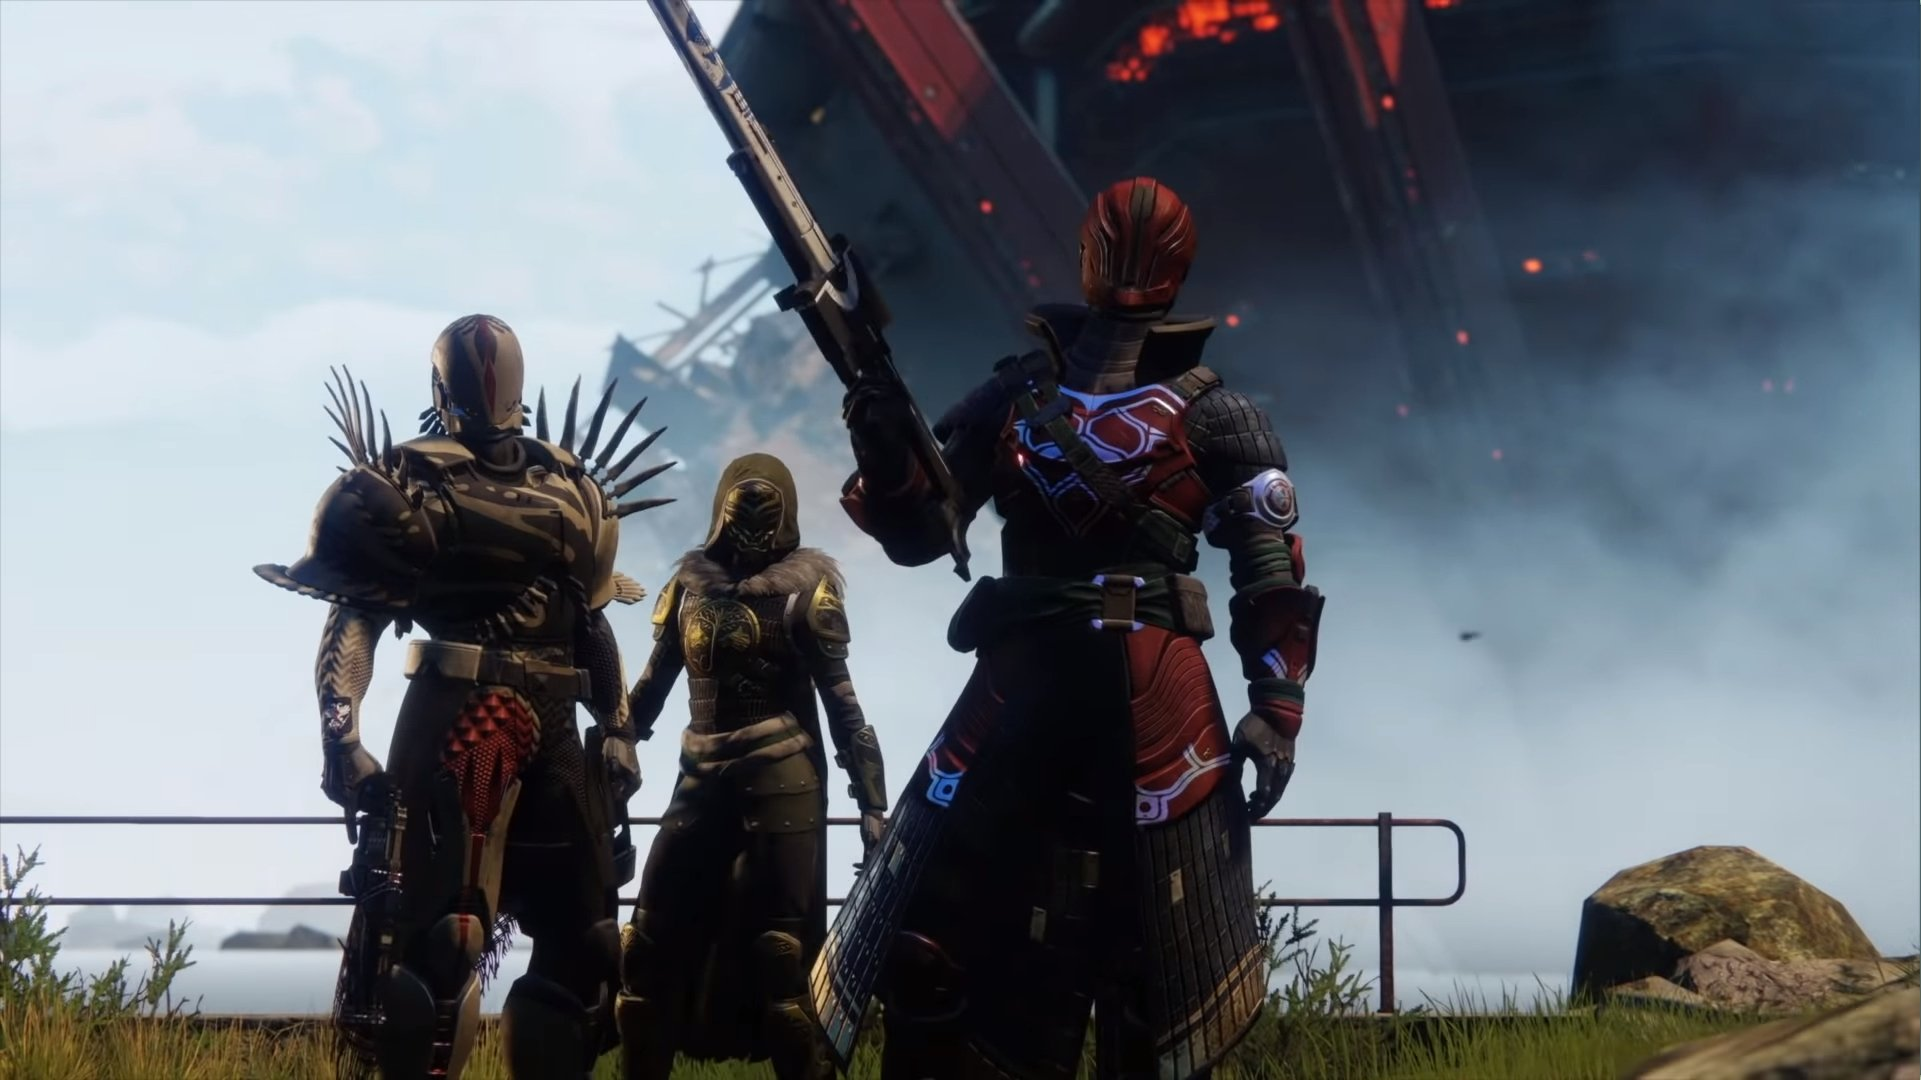 Can you merge accounts or guardians in Destiny 2 cross save